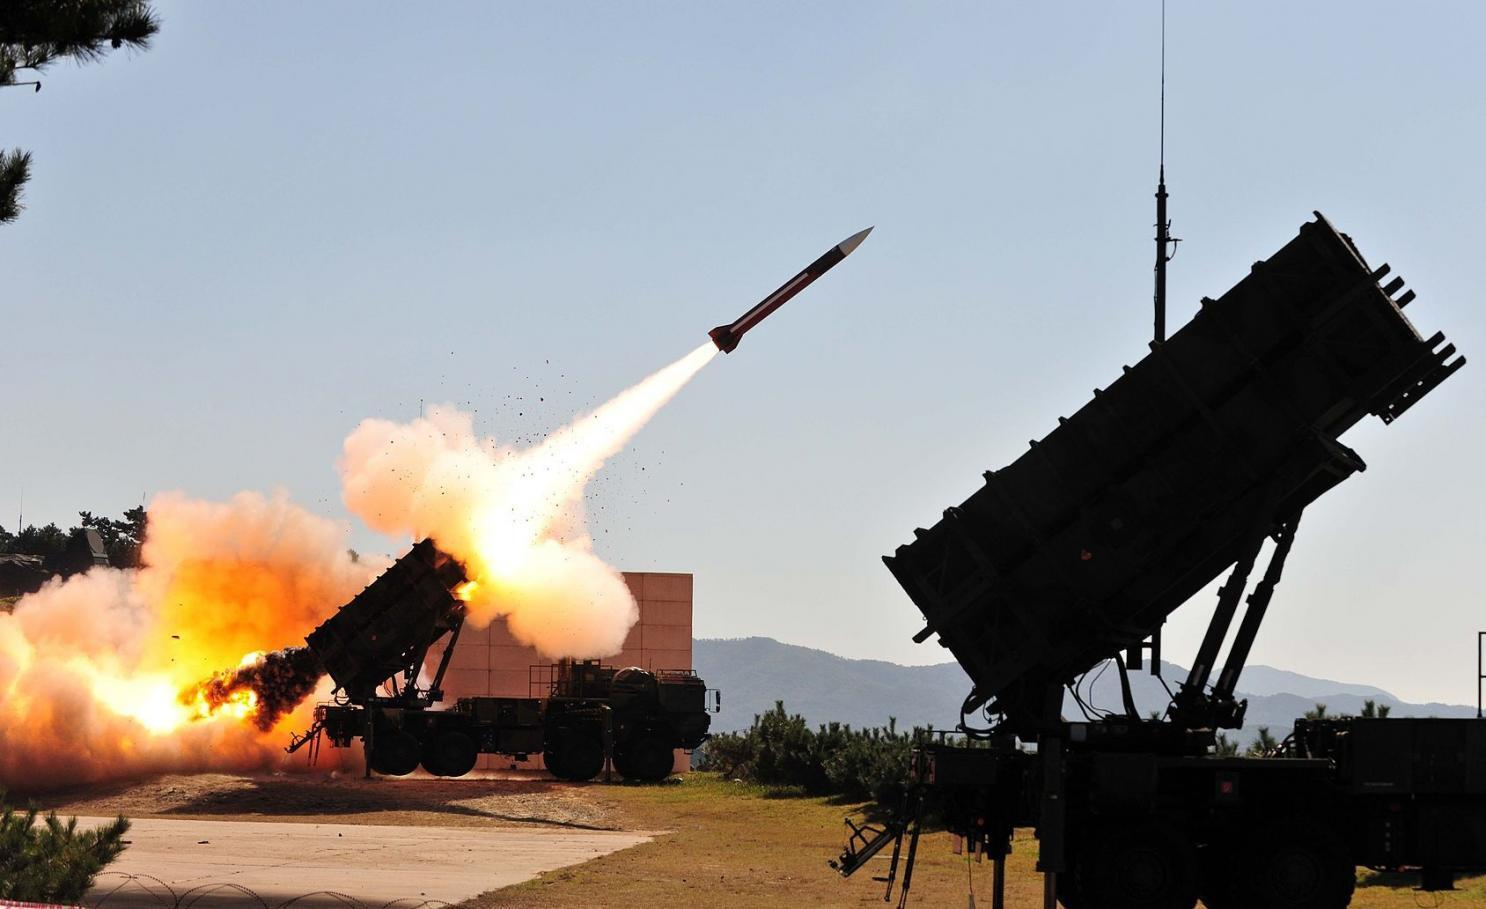 U.S. removing some Patriot missile systems from Middle East ...